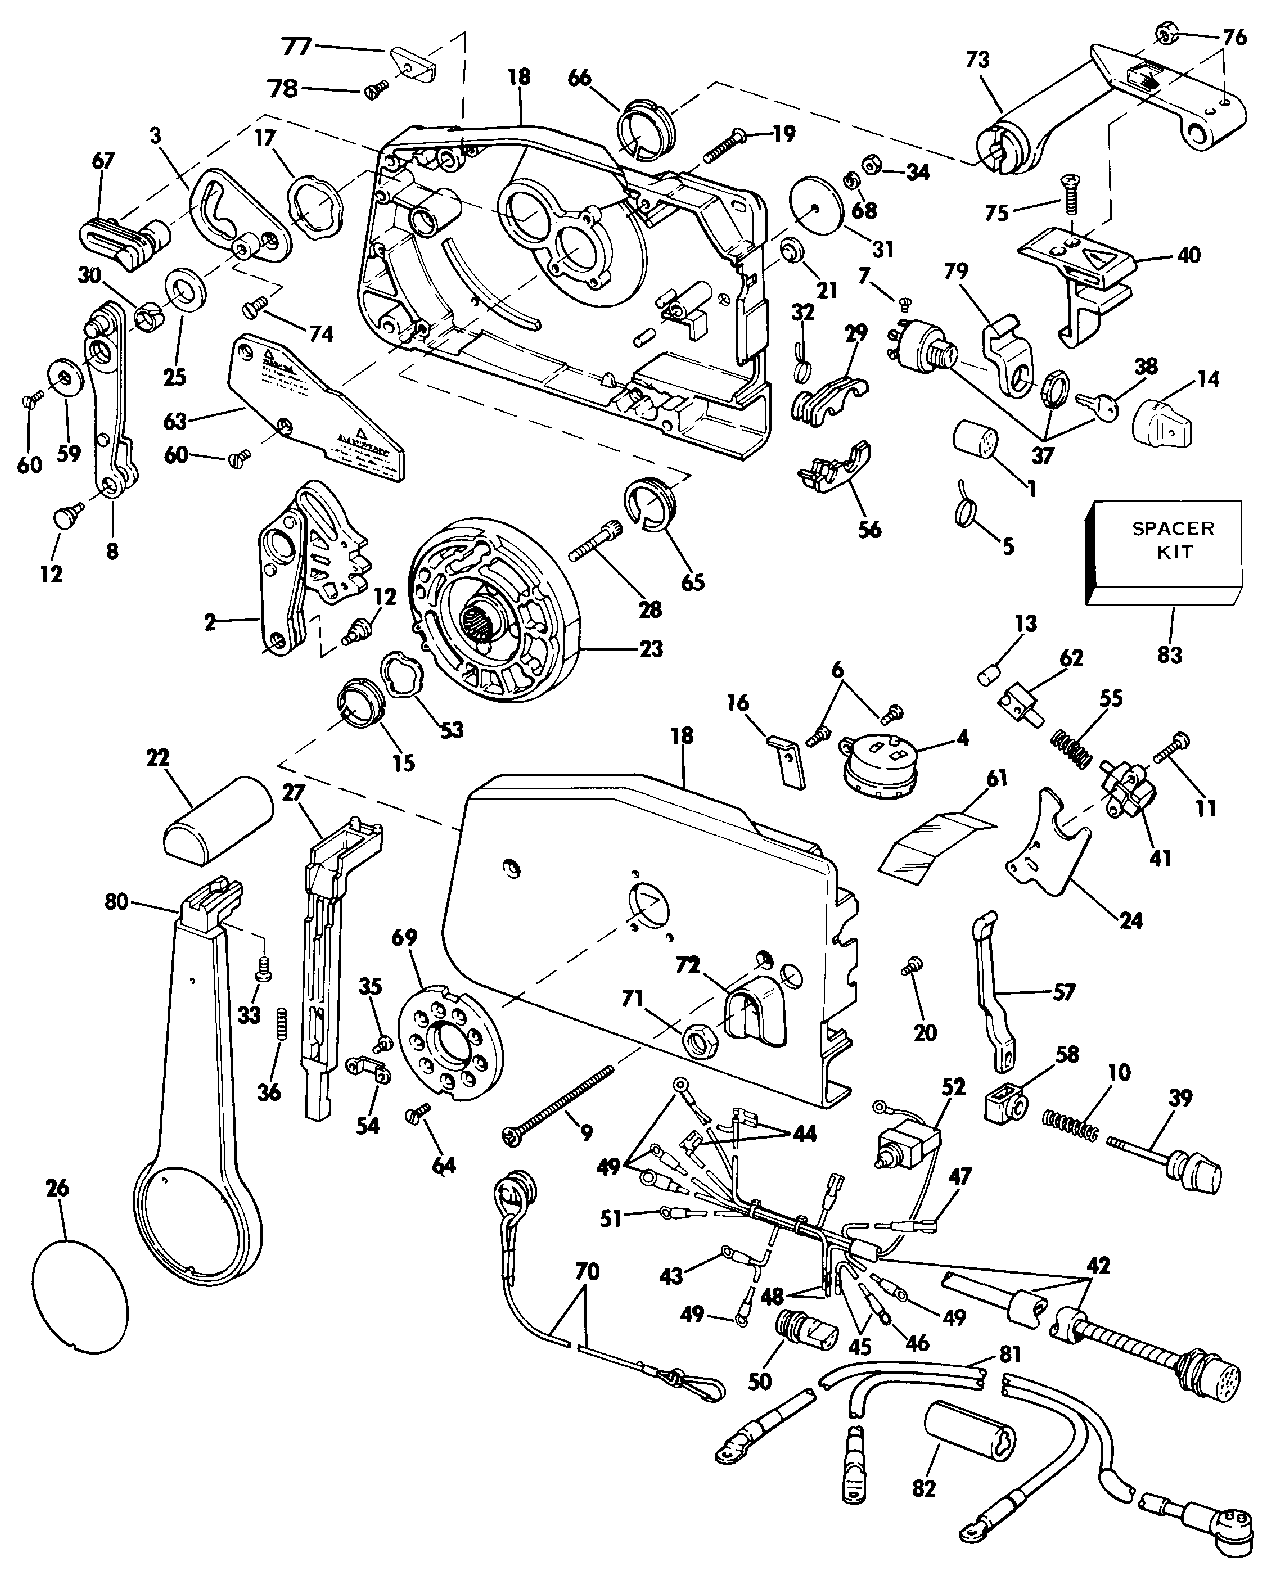 hight resolution of tags johnson outboard electrical diagram 50 hp evinrude wiring diagram 50 hp johnson outboard power pack wiring diagram johnson 48 special